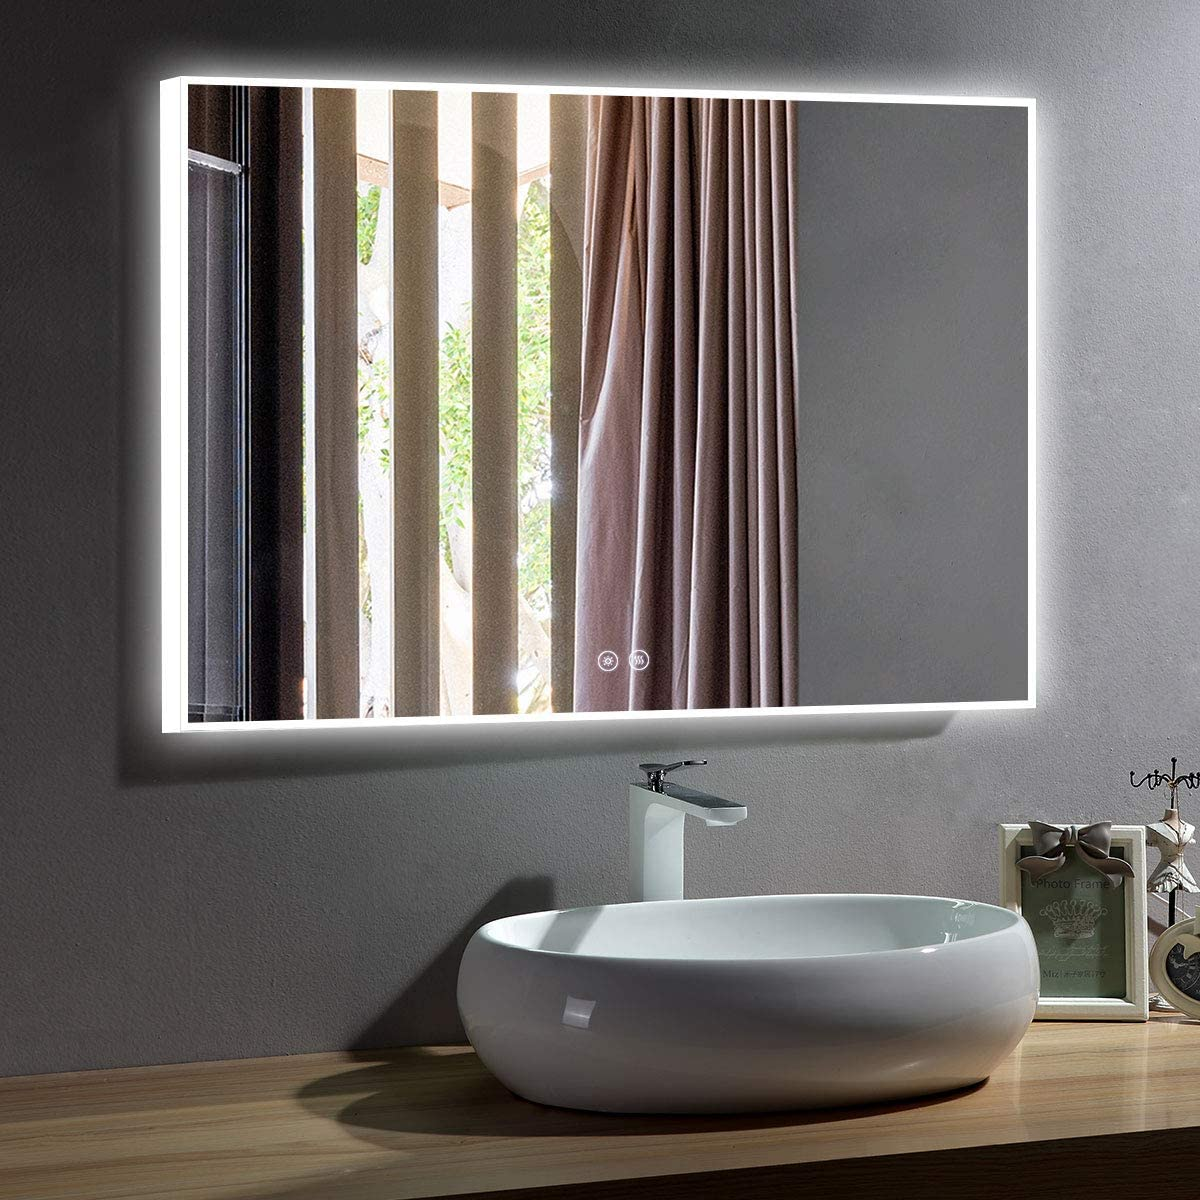 Dimmable ZUI Space 36 x 28 Inch Frameless /& Surrounded Lighted Slim Acrylic LED Bathroom Vanity Mirror with Touch Switch IP44 Waterproof D413-3628 Vertical /& Horizontal Wall-Mounted Defogger